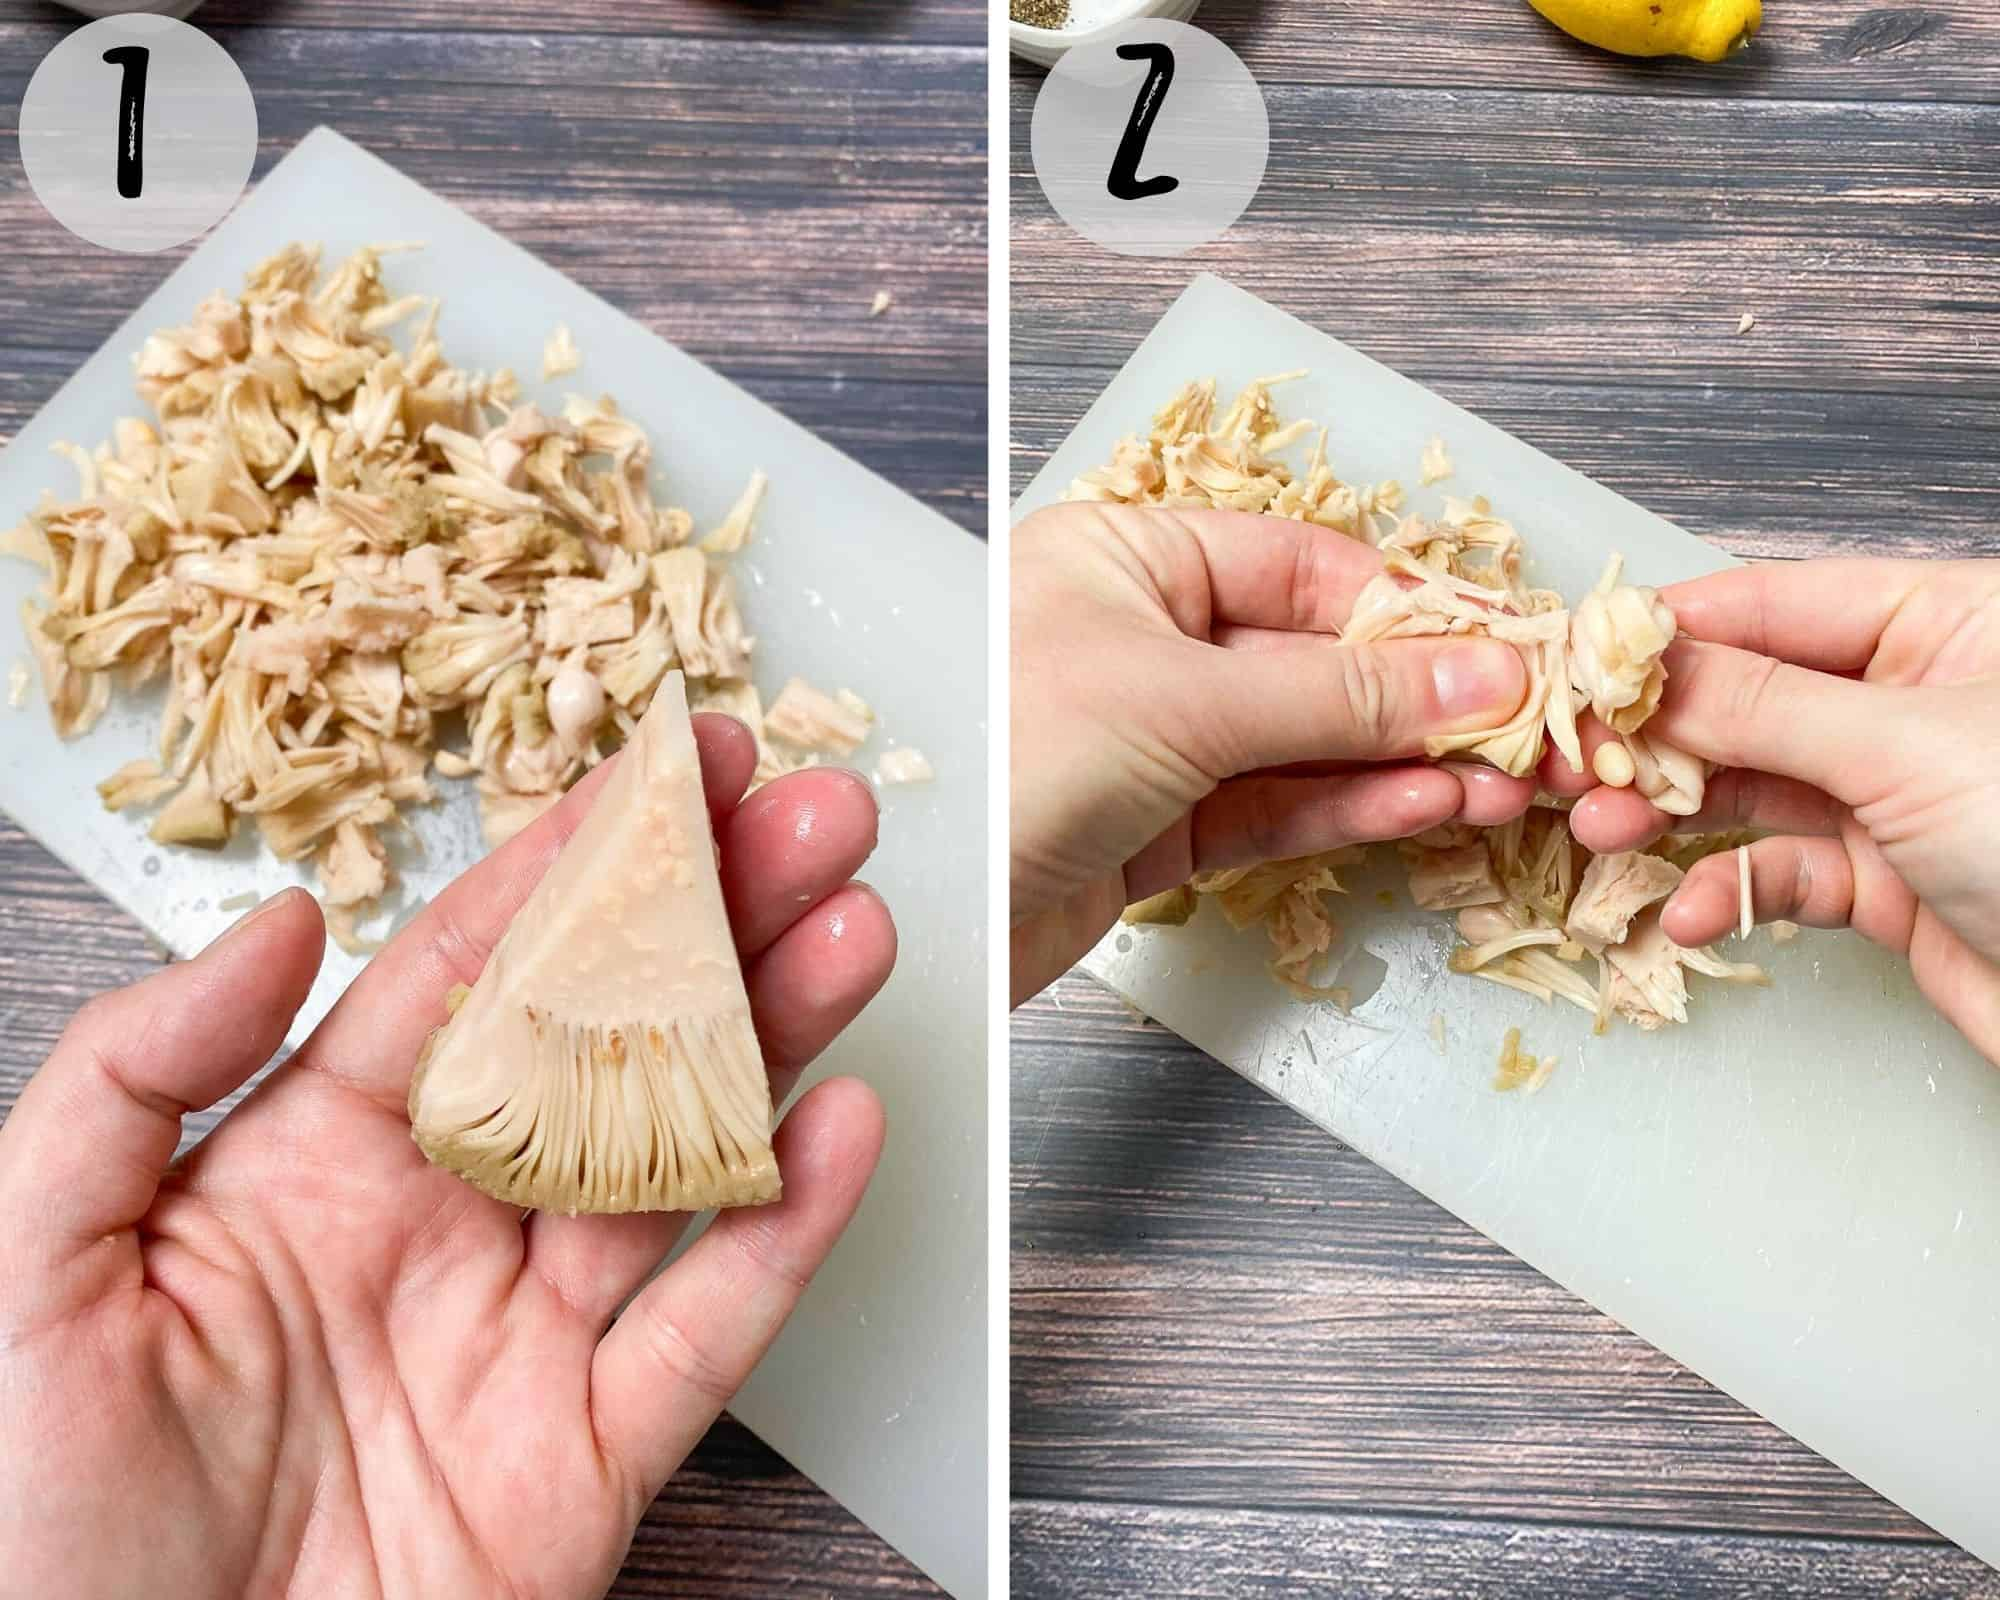 hand holding up jackfruit chunk and then pulling apart on cutting board